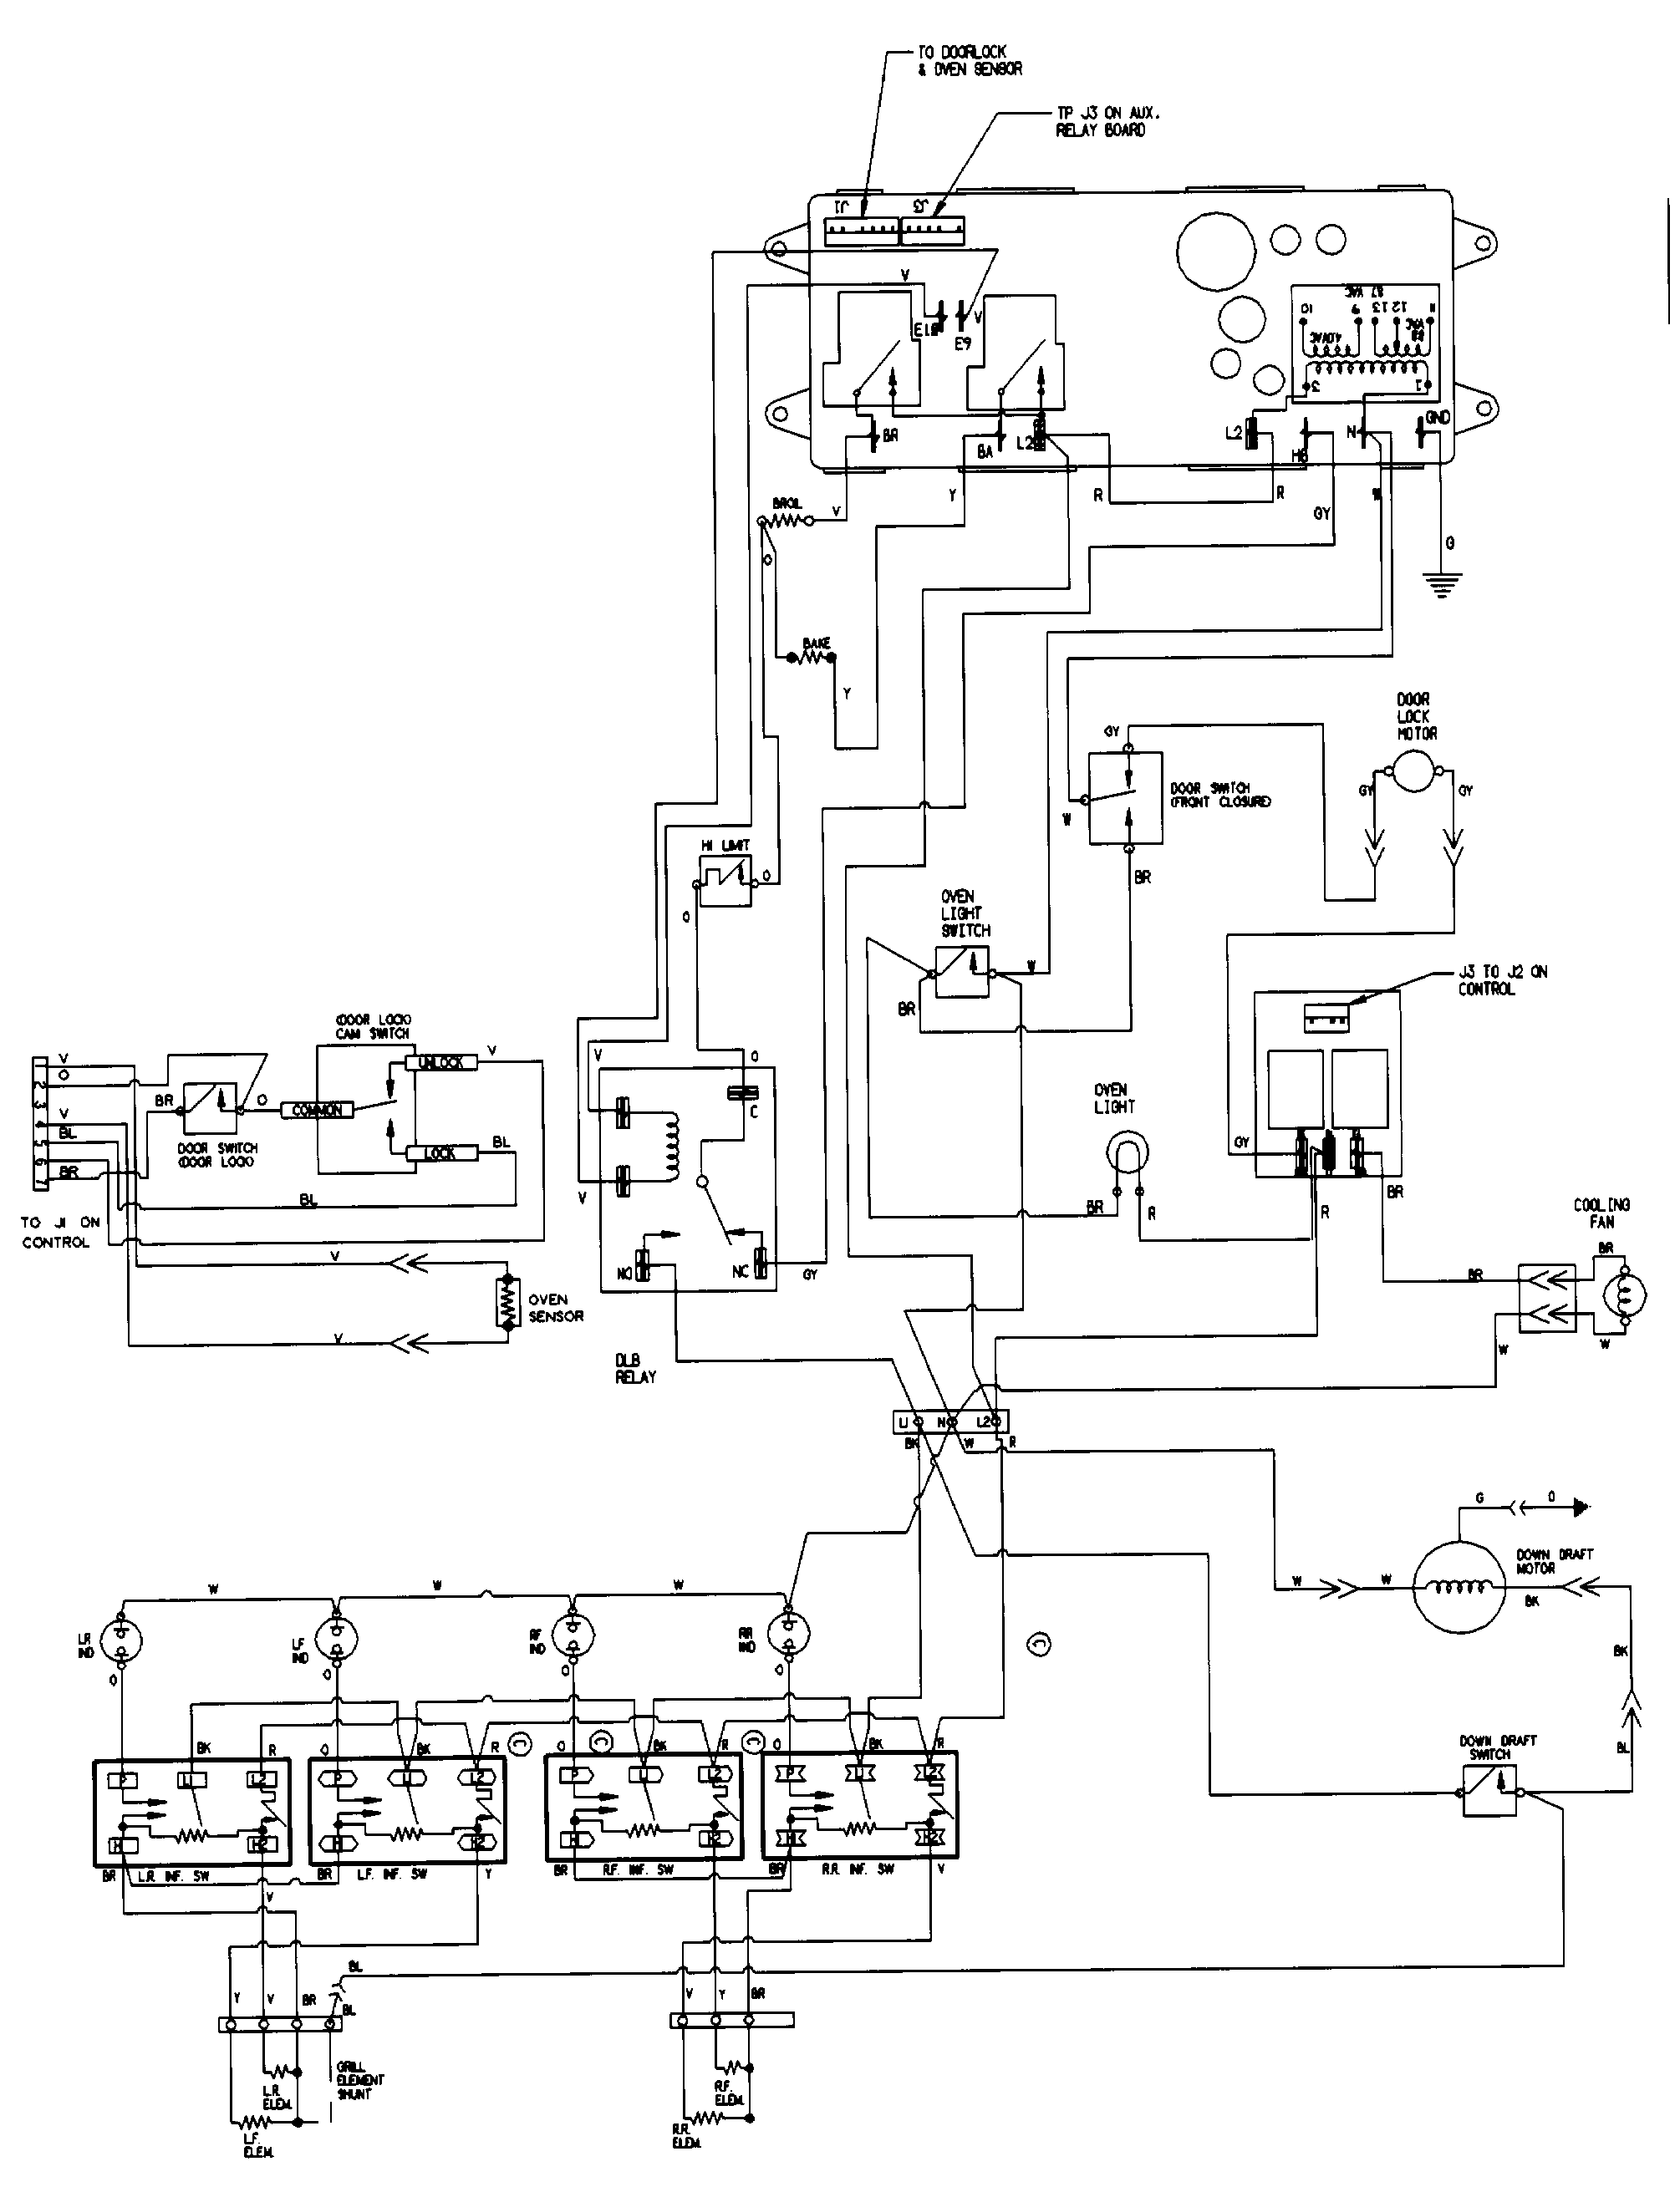 maytag sve47100 electric slide-in range timer - stove ... jenn air double wall oven wiring diagram #13